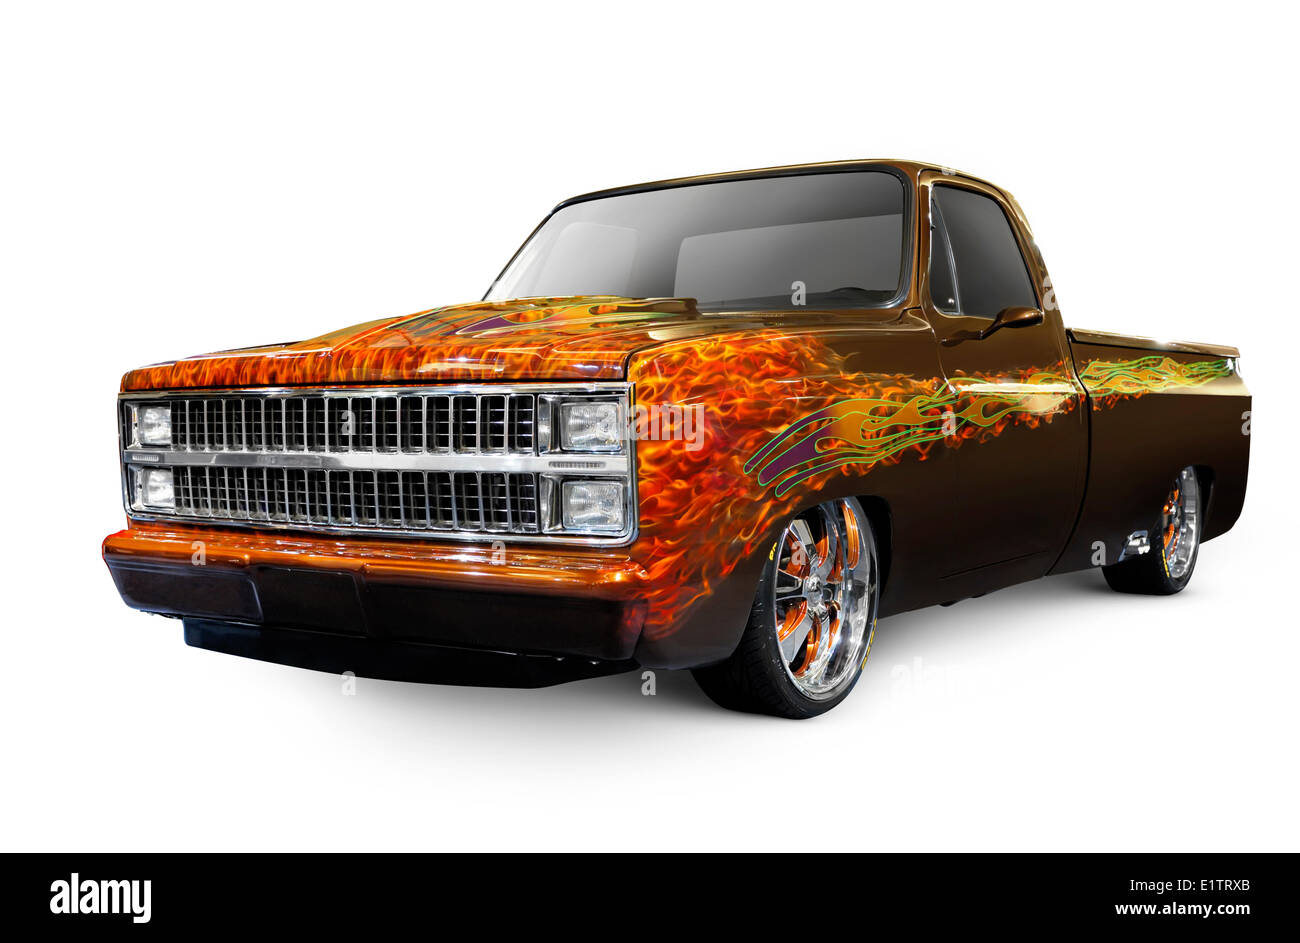 Hot Rod Chevrolet Scotsdale 1978 retro pickup truck with flame pattern painted on it Isolated on white background Stock Photo